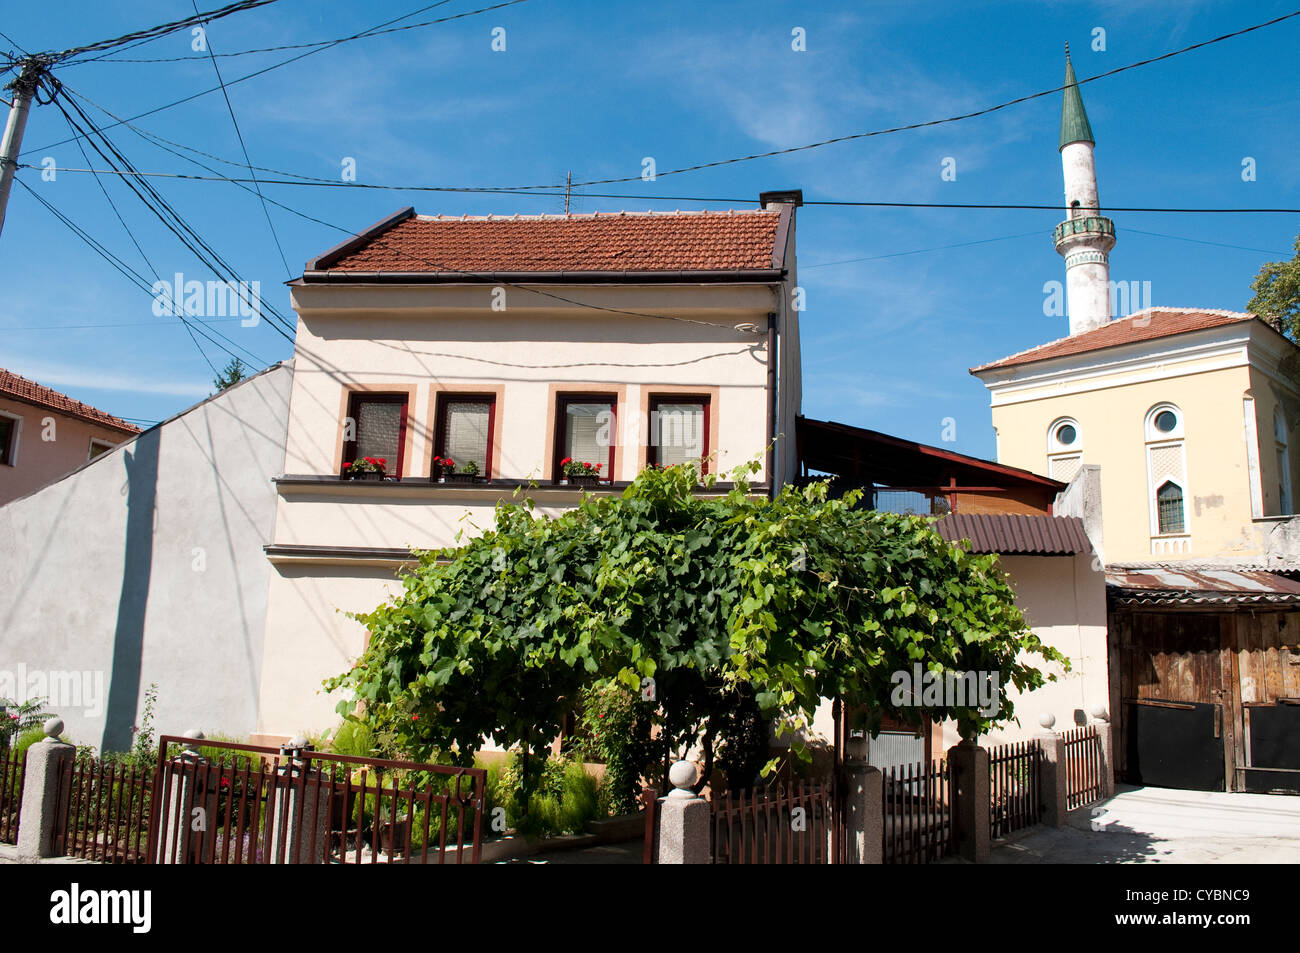 Street with a house and mosque, Travnik, Bosnia and Herzegovina - Stock Image